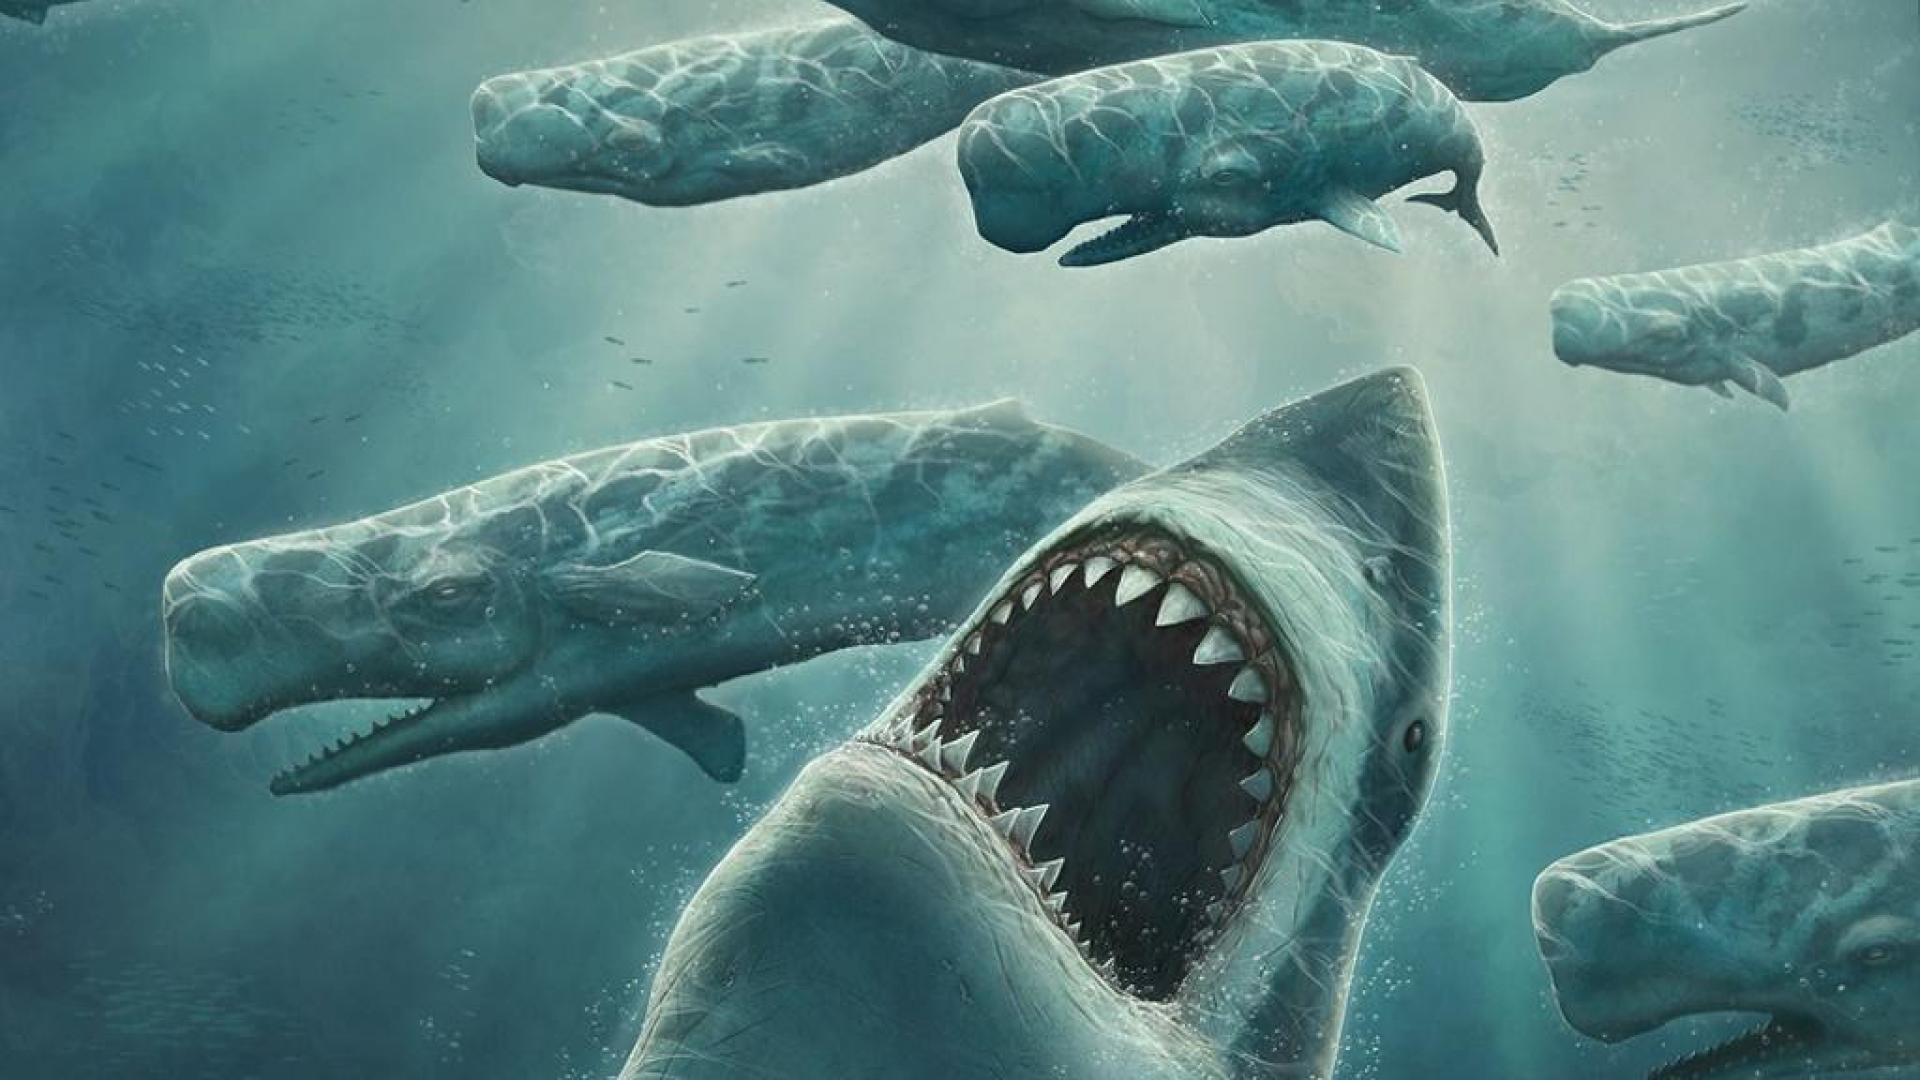 megalodon wallpaper hd (65+ images)